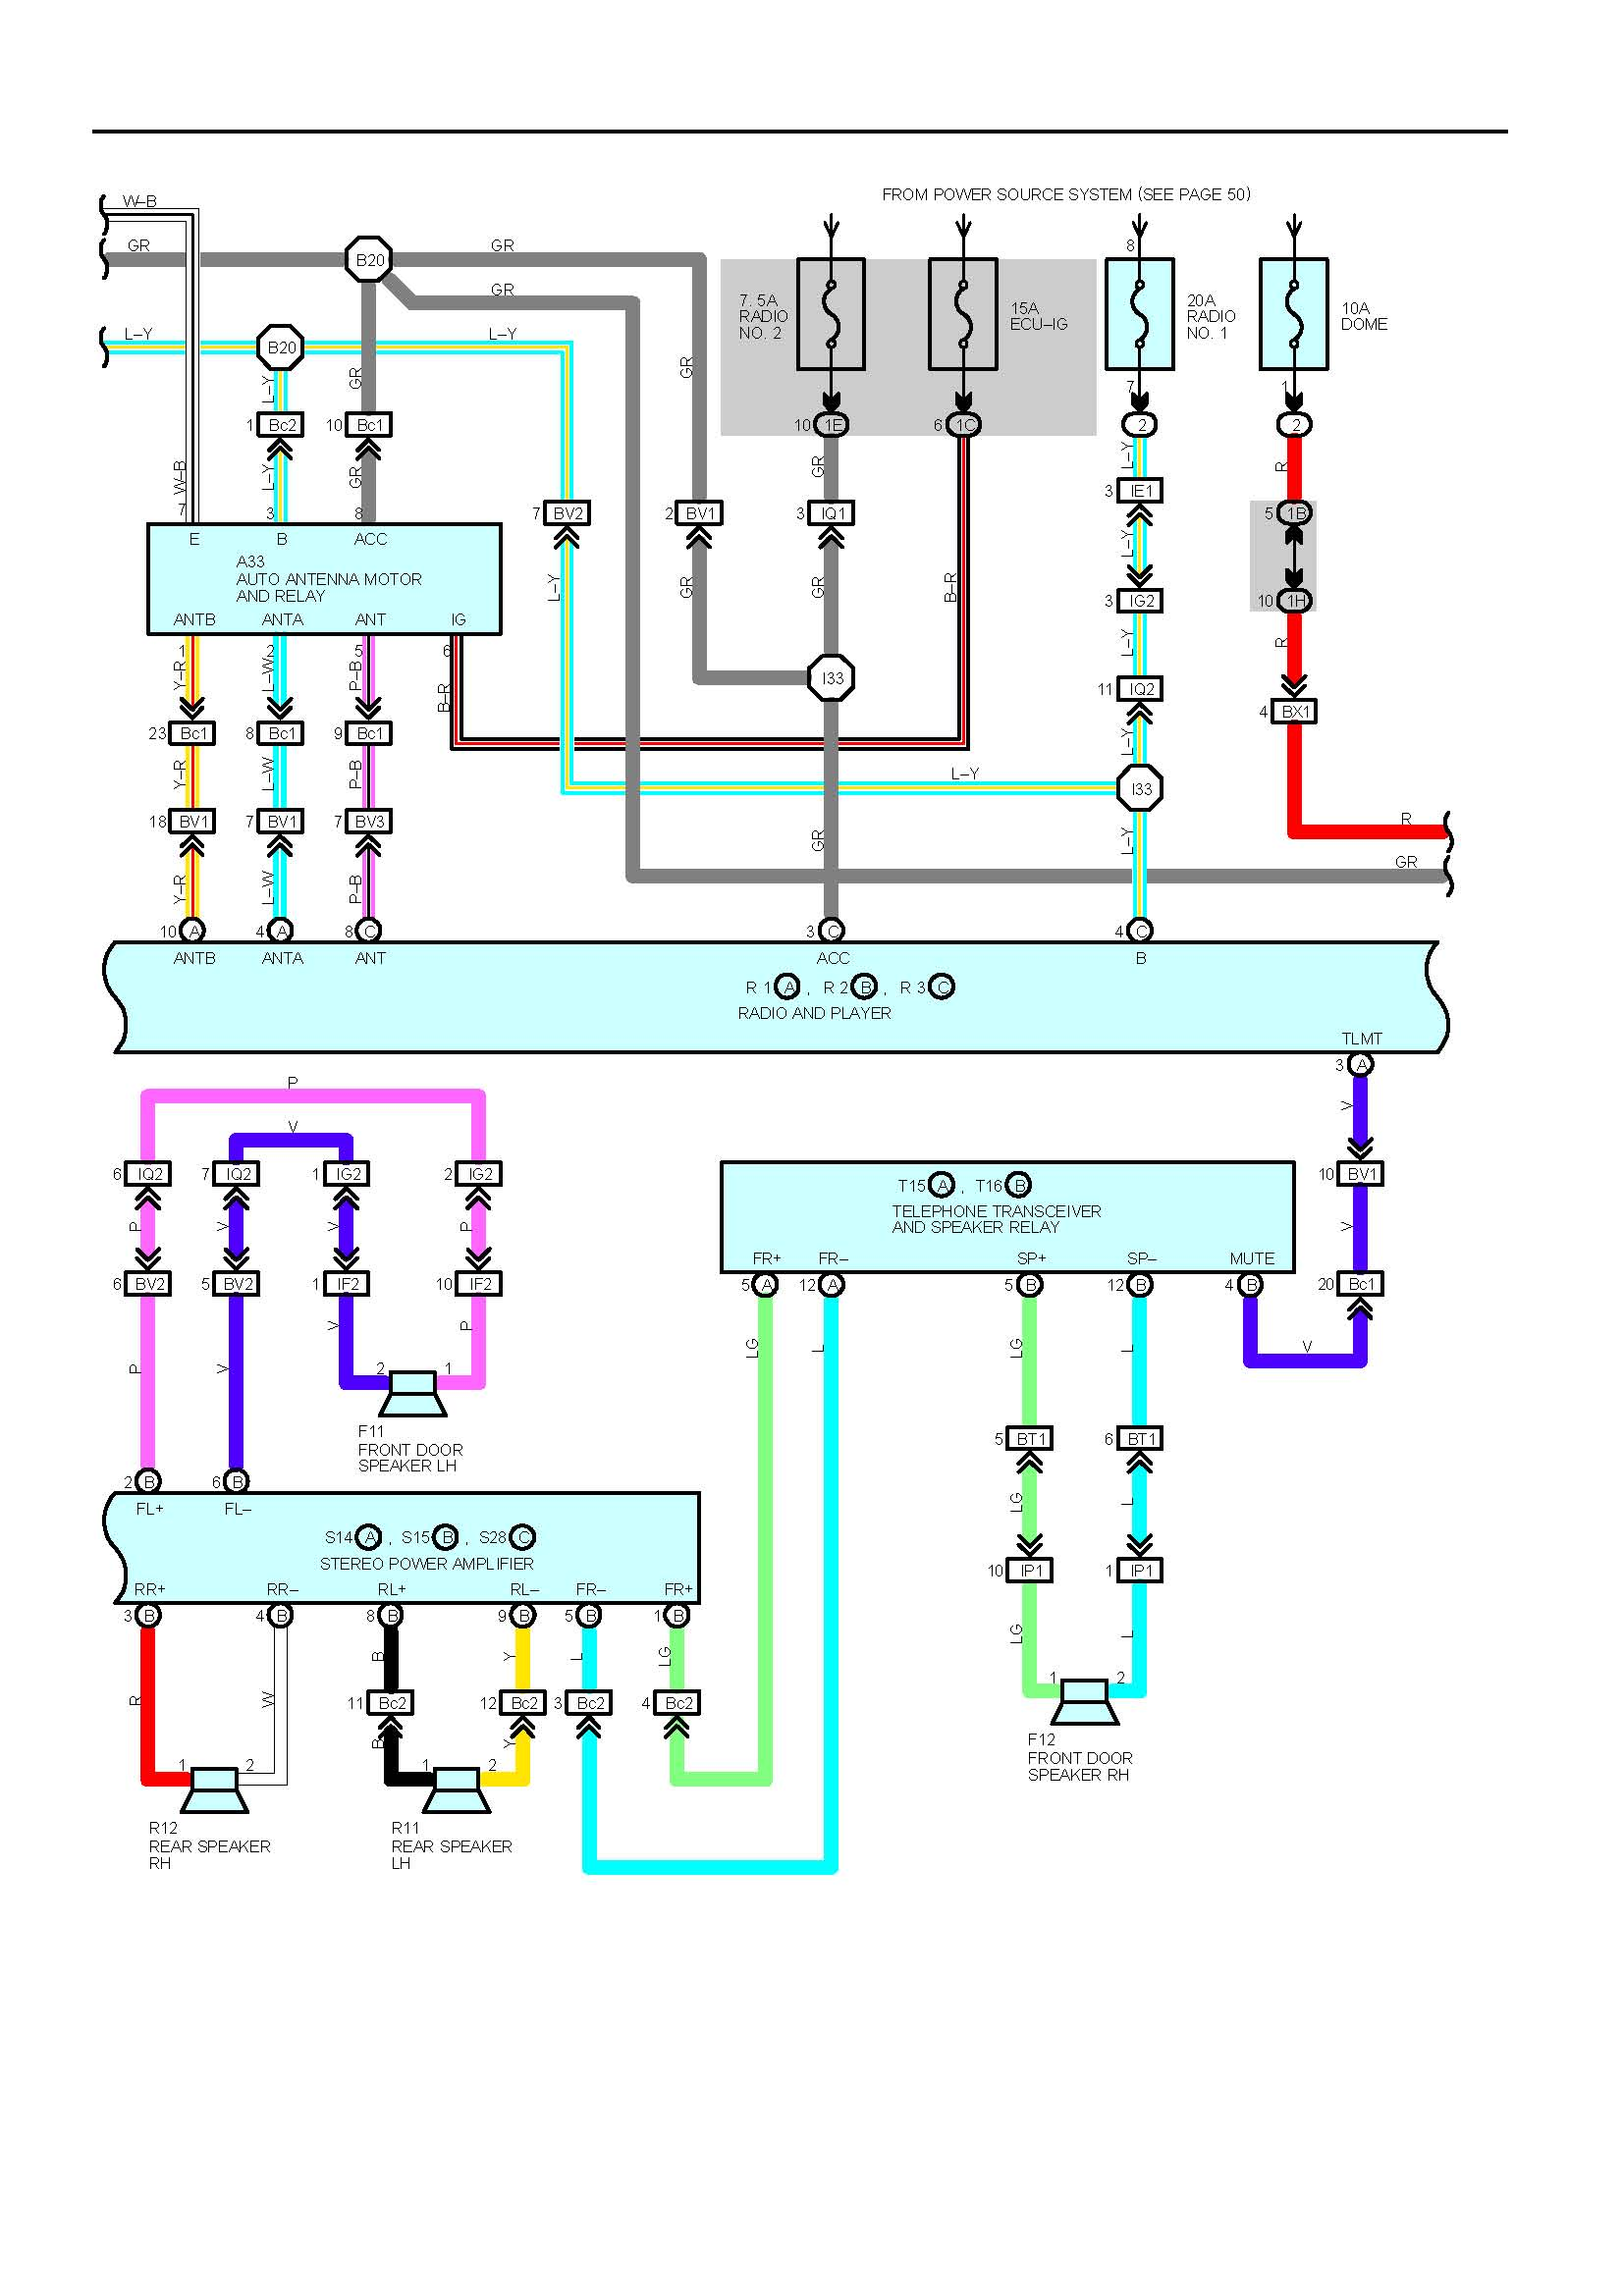 Awesome Fios Wiring Diagram Picture Collection - Best Images for ...